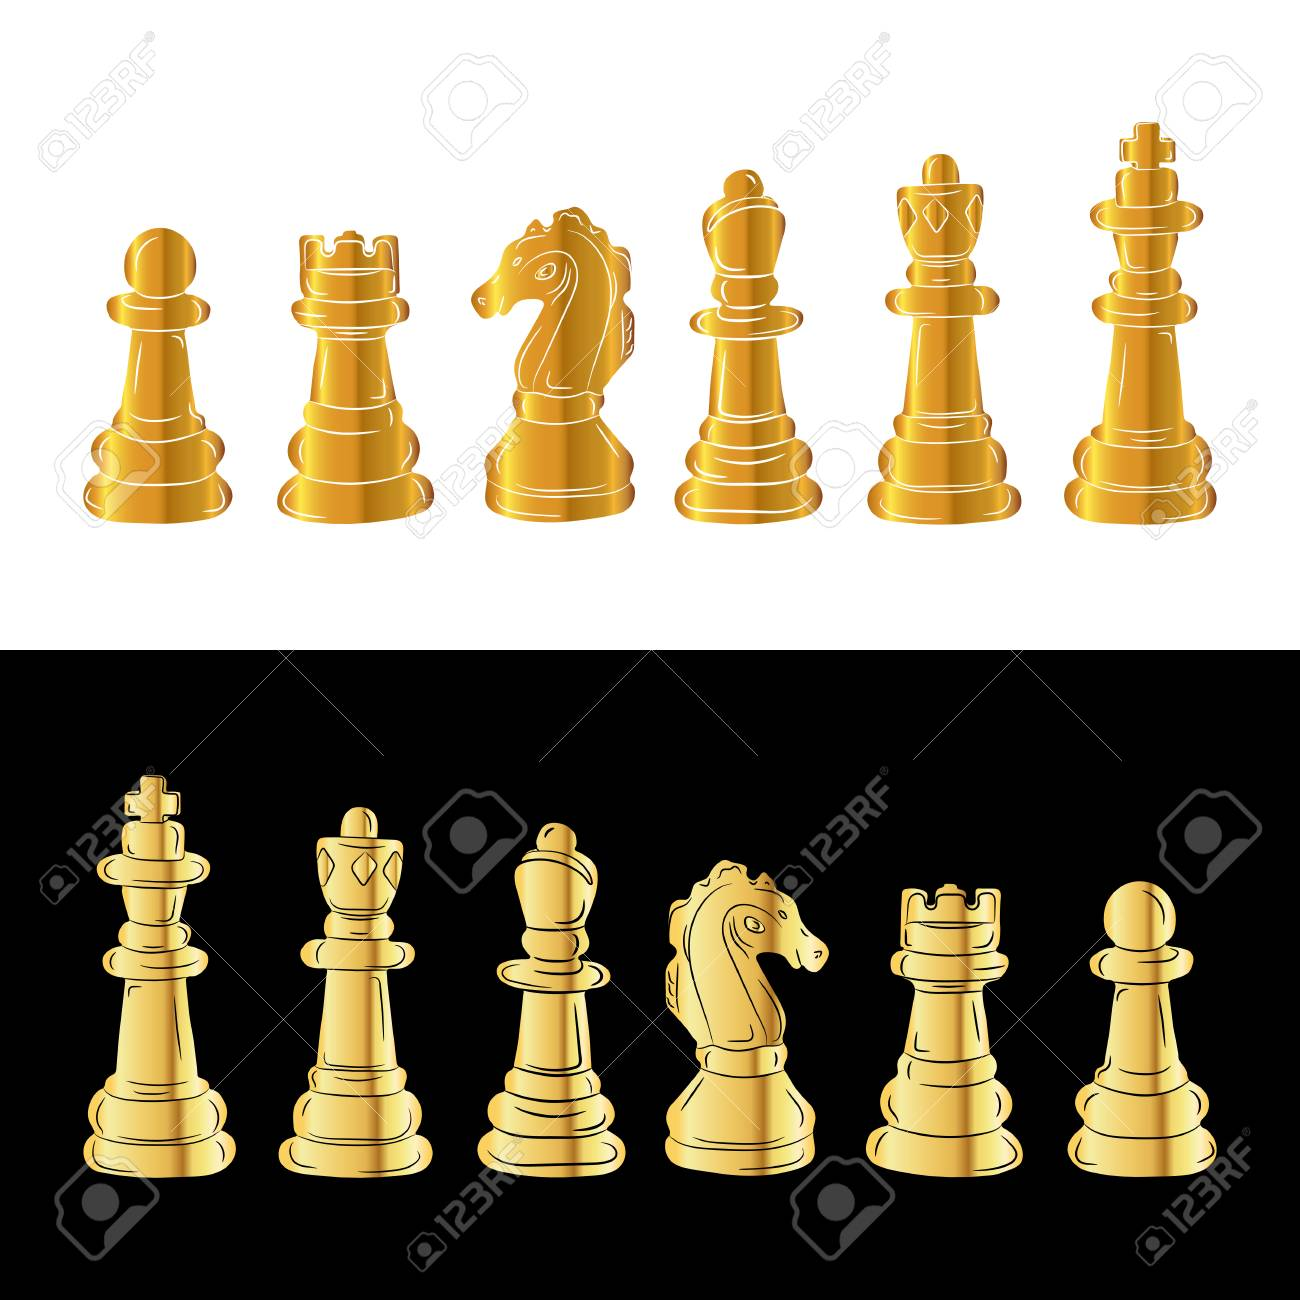 Gold Chess Pieces Set Of Gold Chess Figures Vector Illustration Golden Chess Pieces